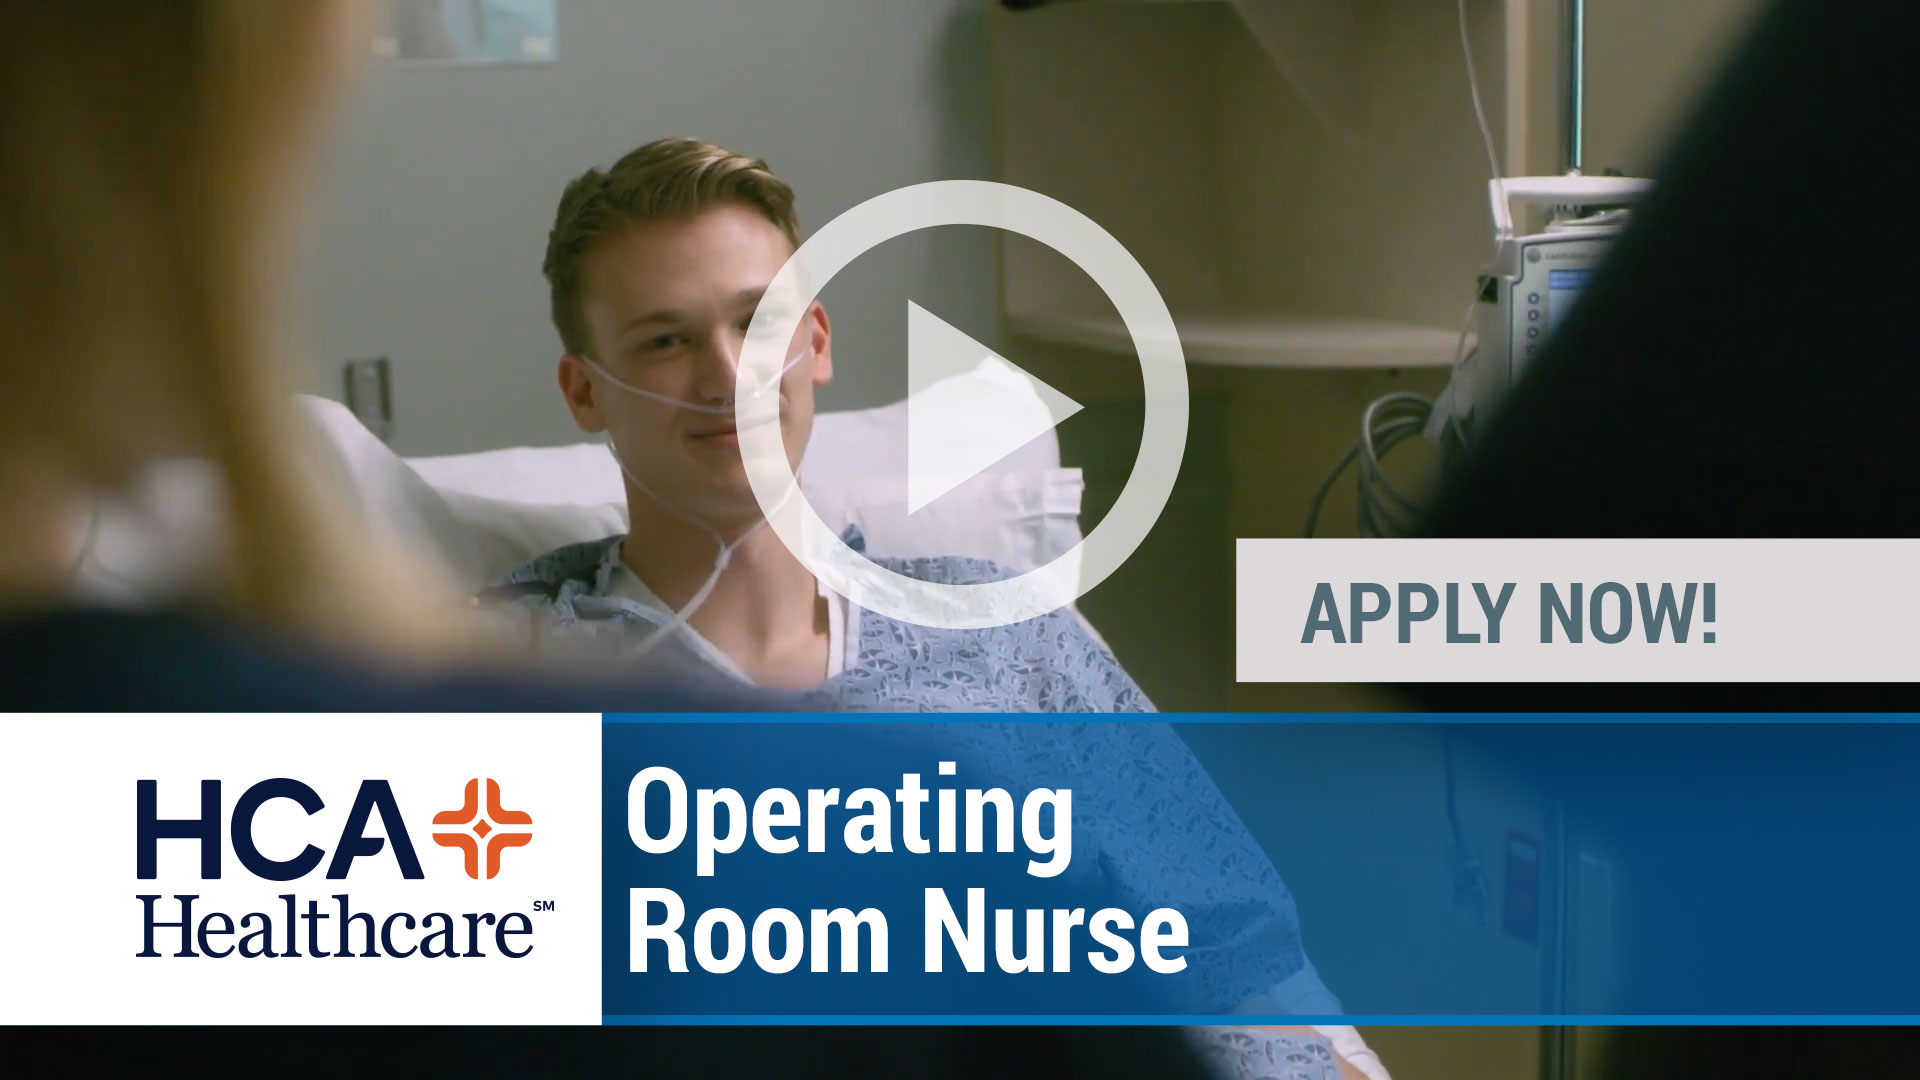 Watch our careers video for available job opening Operating Room Nurse in Wichita, Kansas